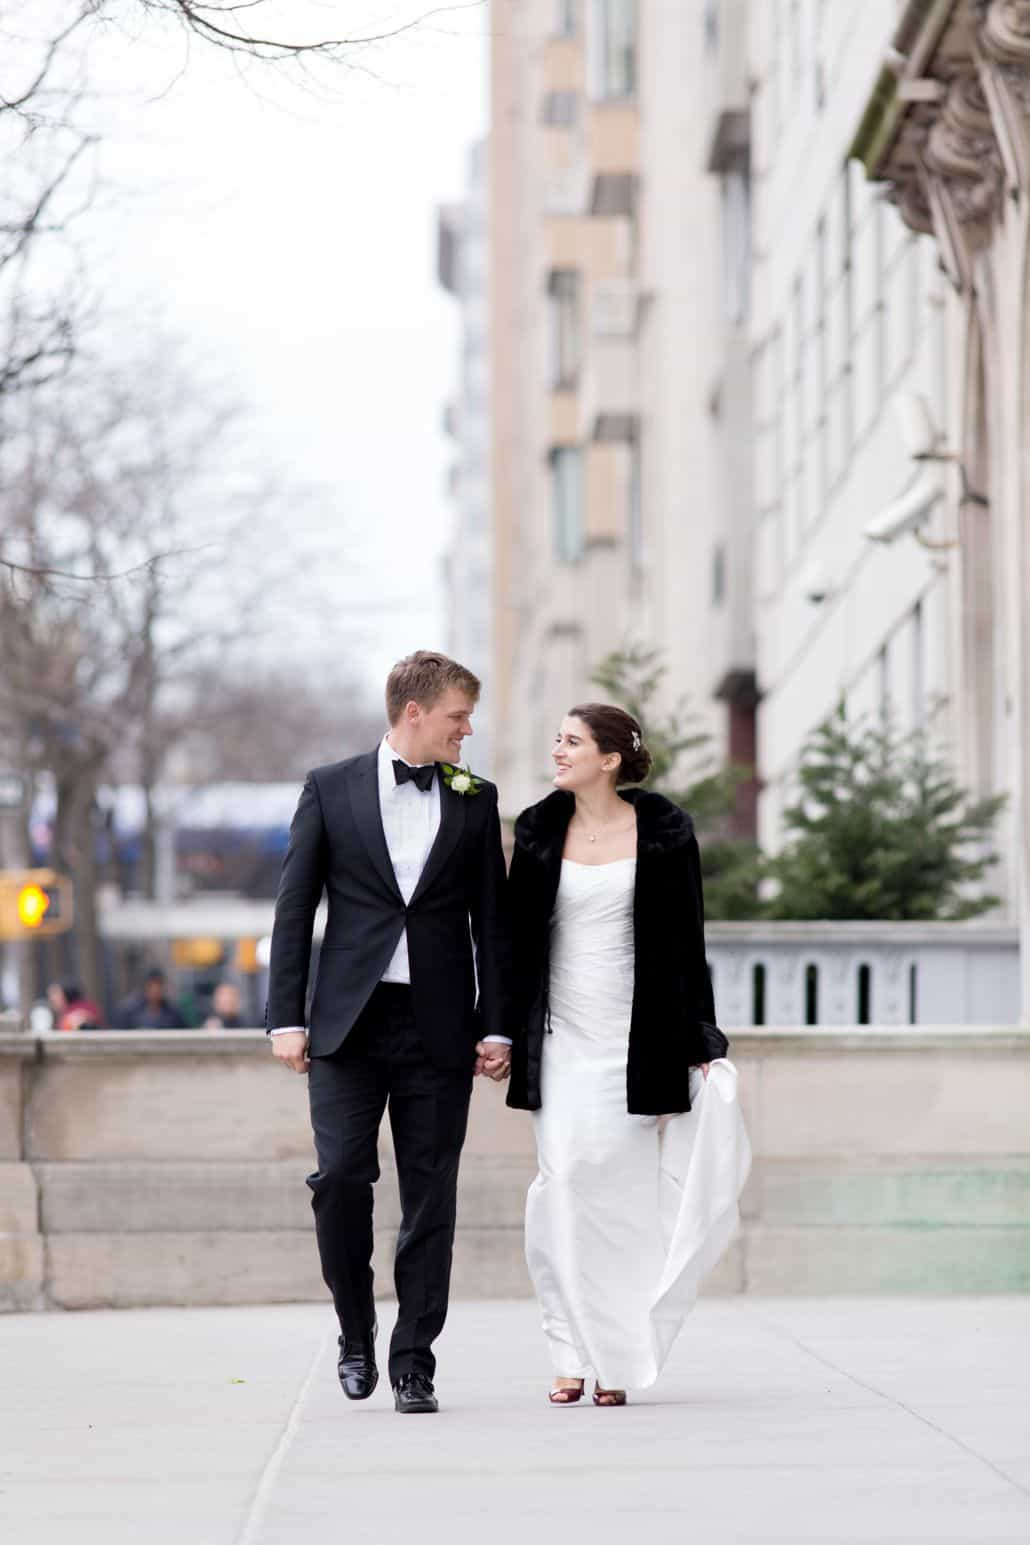 Bride and groom walk hand in hand in New York in front of Guggenheim for early Spring wedding photo shoot in March. Bride wears black coat over Veka Bridal wedding dress. Groom wears black tux.